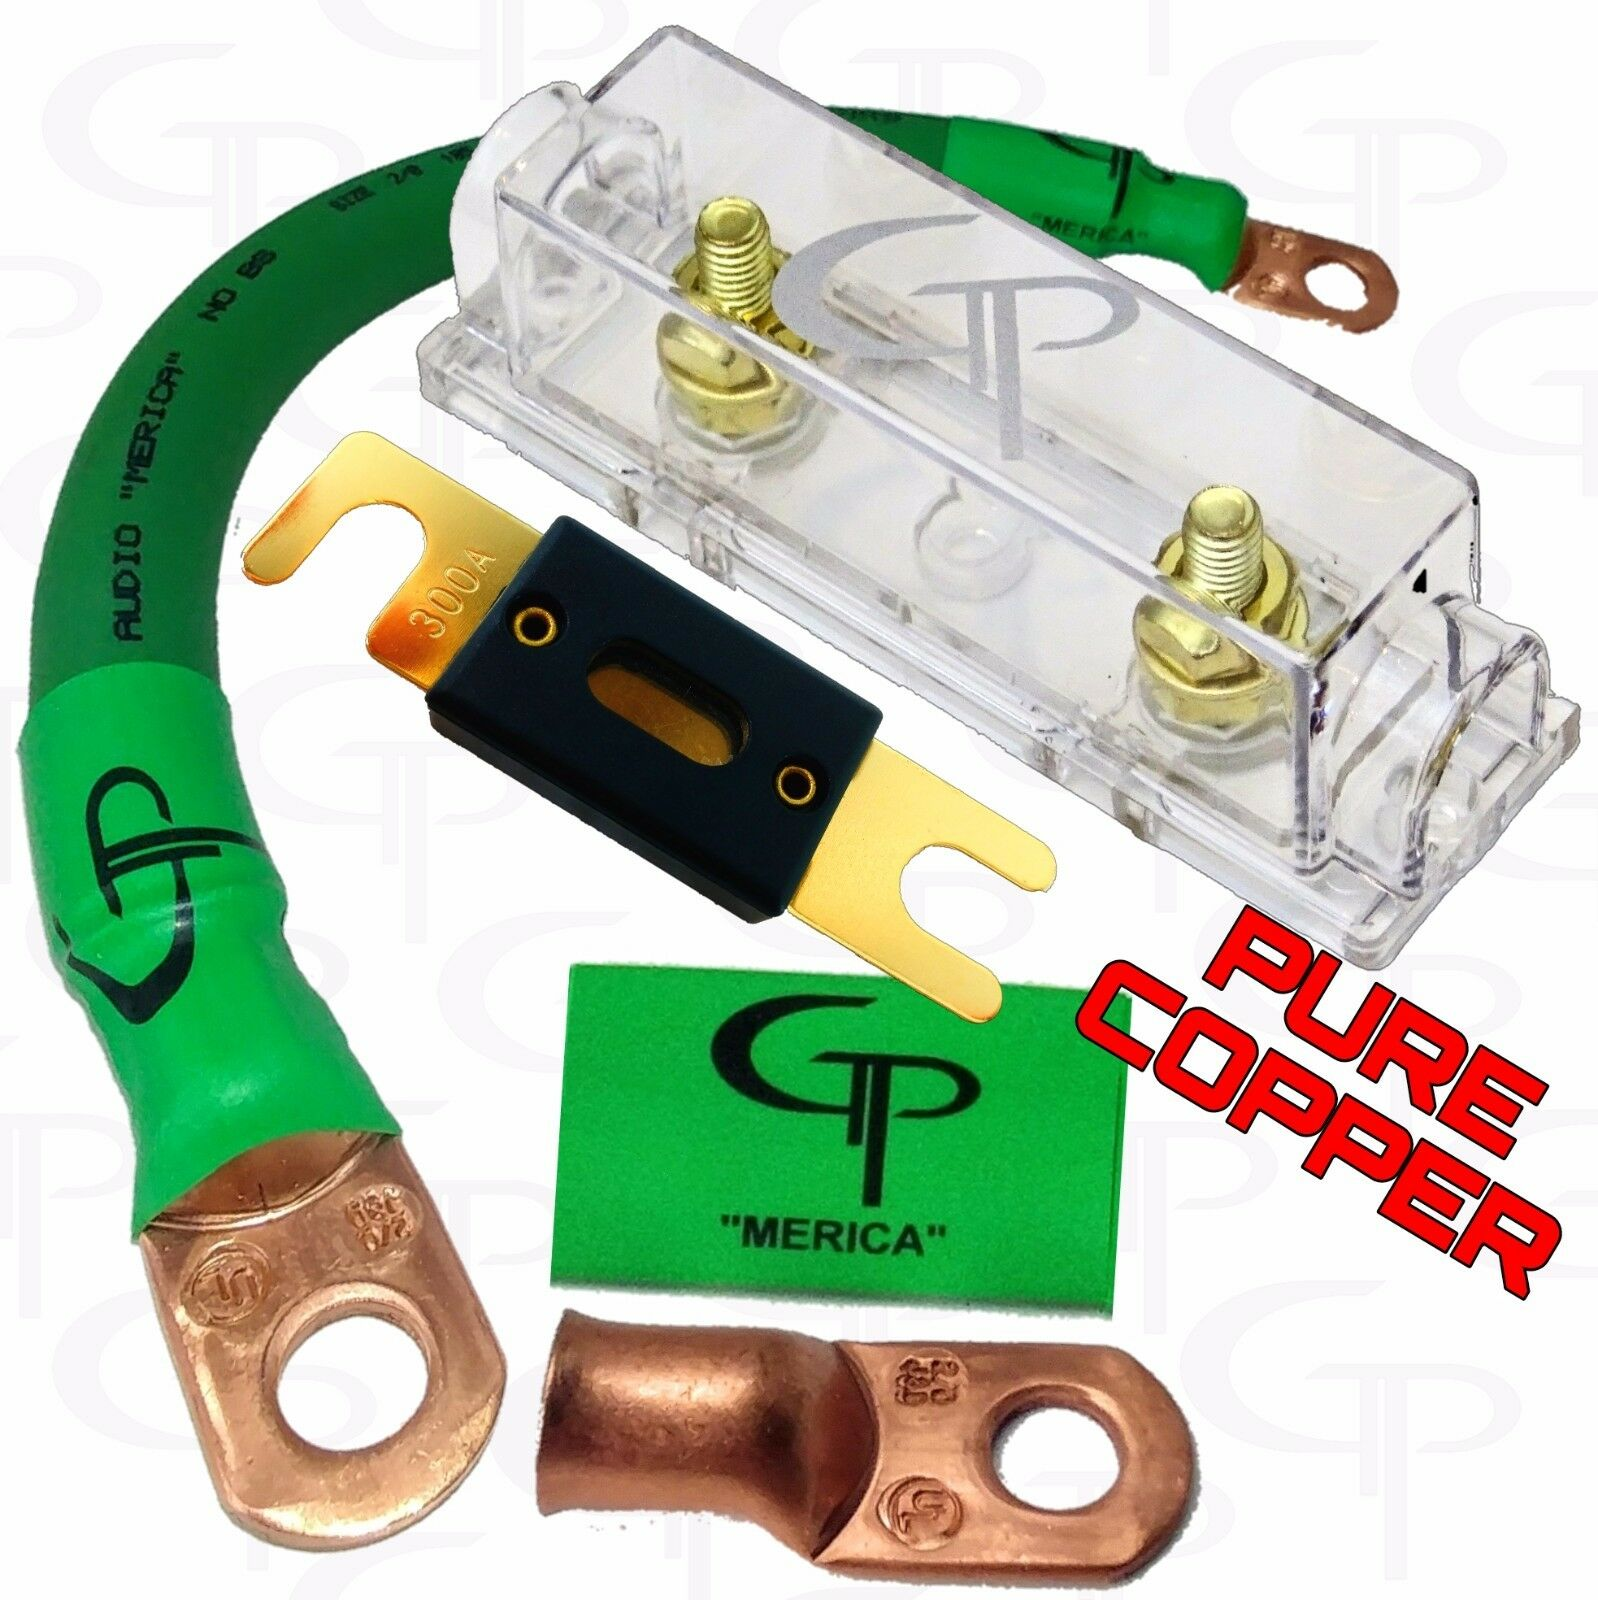 Massive Audio G4 - Install Kit Amp 4 Gauge 100 Copper Maxi Fuse With Holder  ... for sale online | eBayeBay